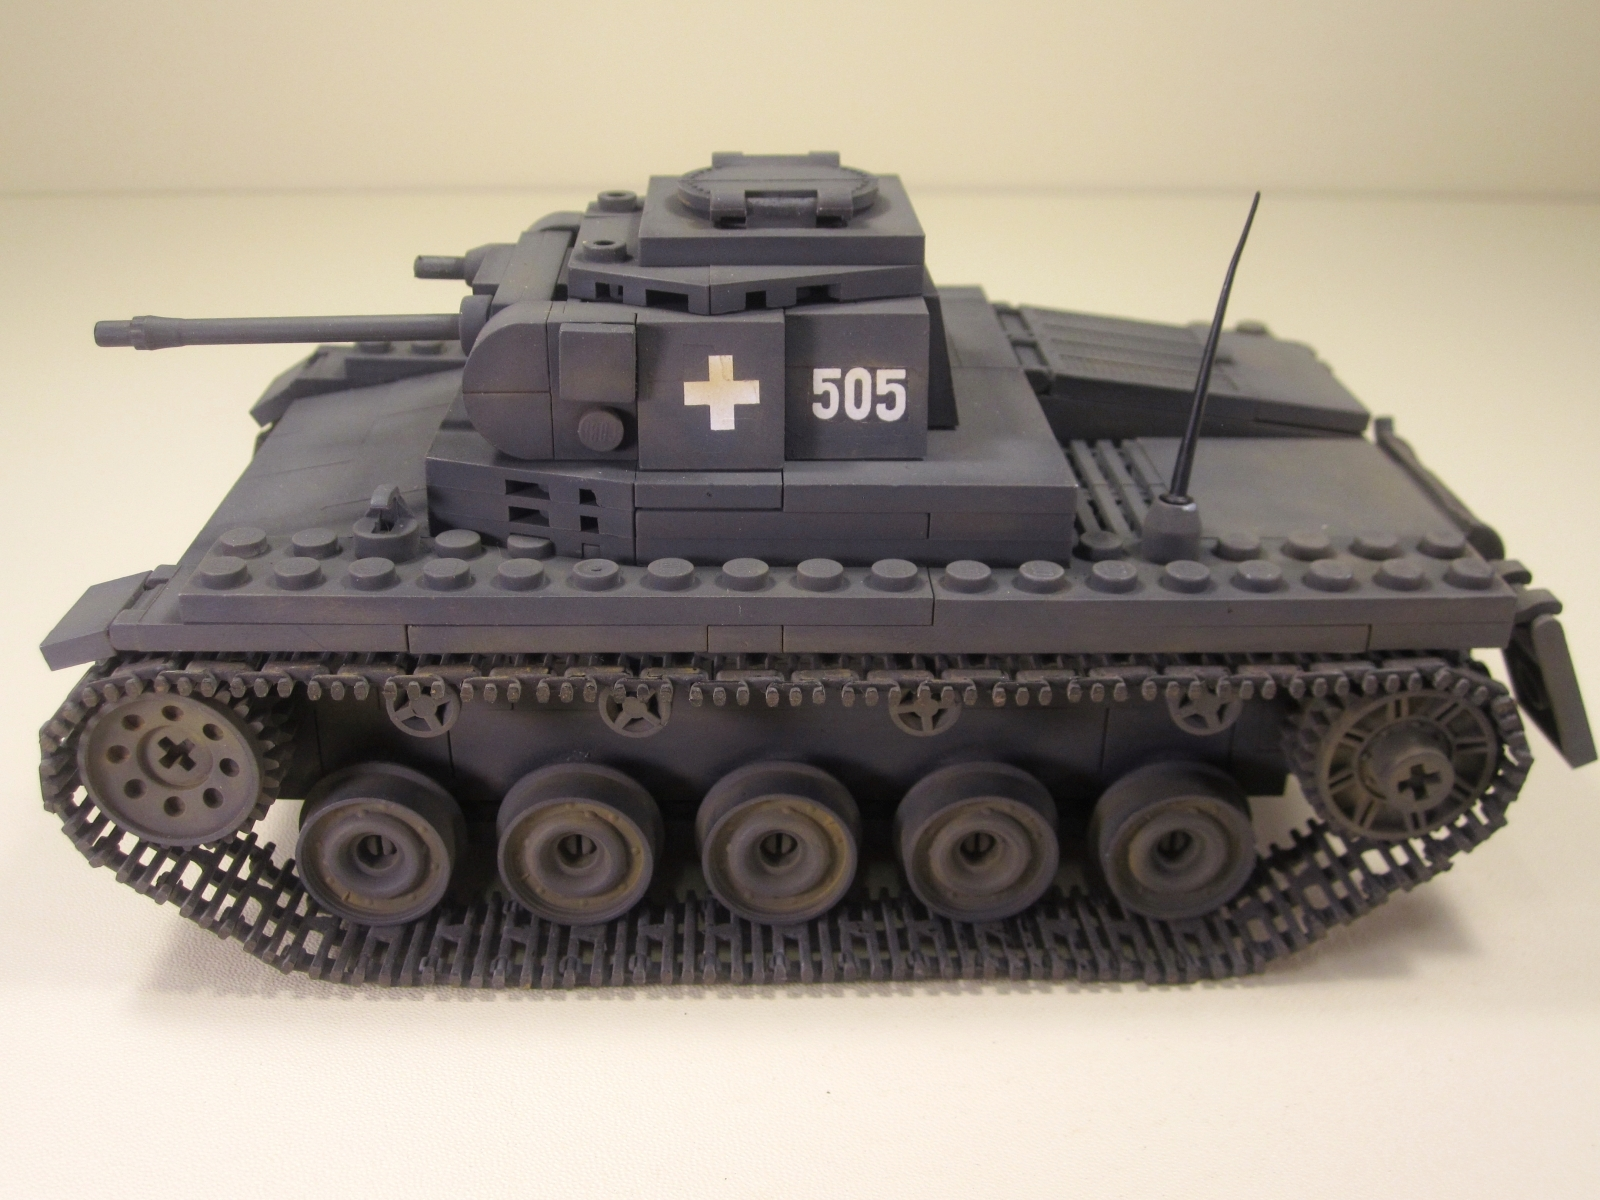 Cobi_2459_PzKpfw_II_www.super-bricks.de_camouflage_paint_Small_Army_Tarnung_01